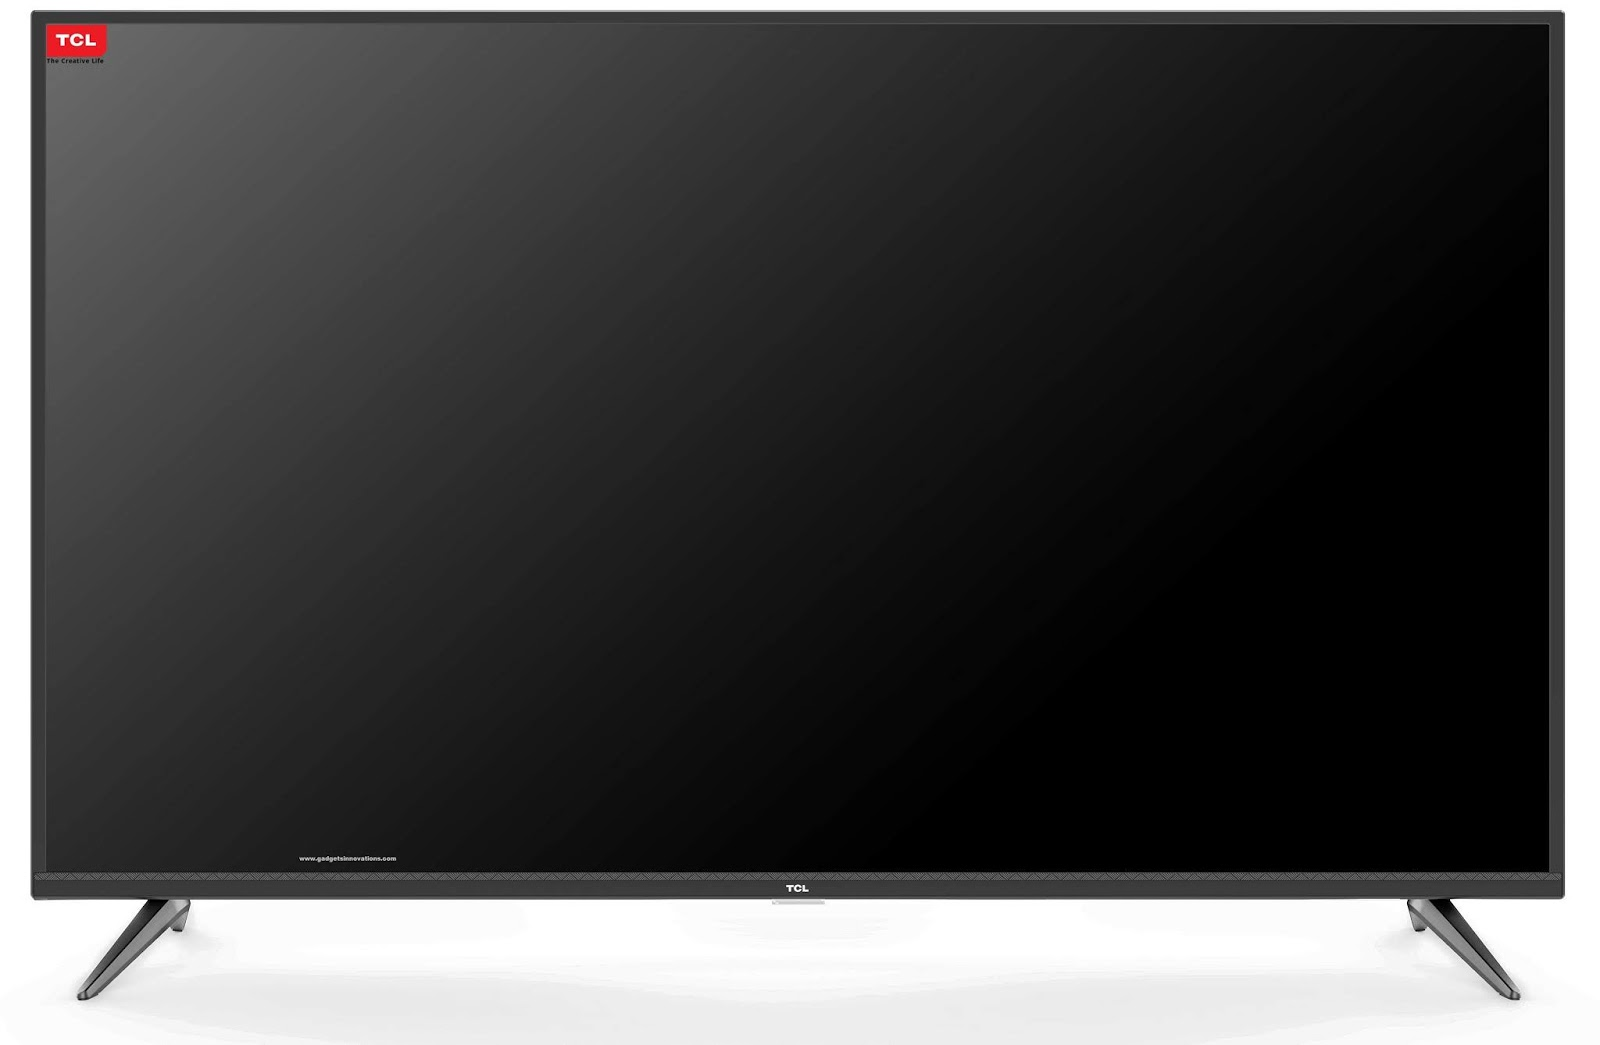 TCL Introduces Latest Range P8 Series - India's First 4K AI